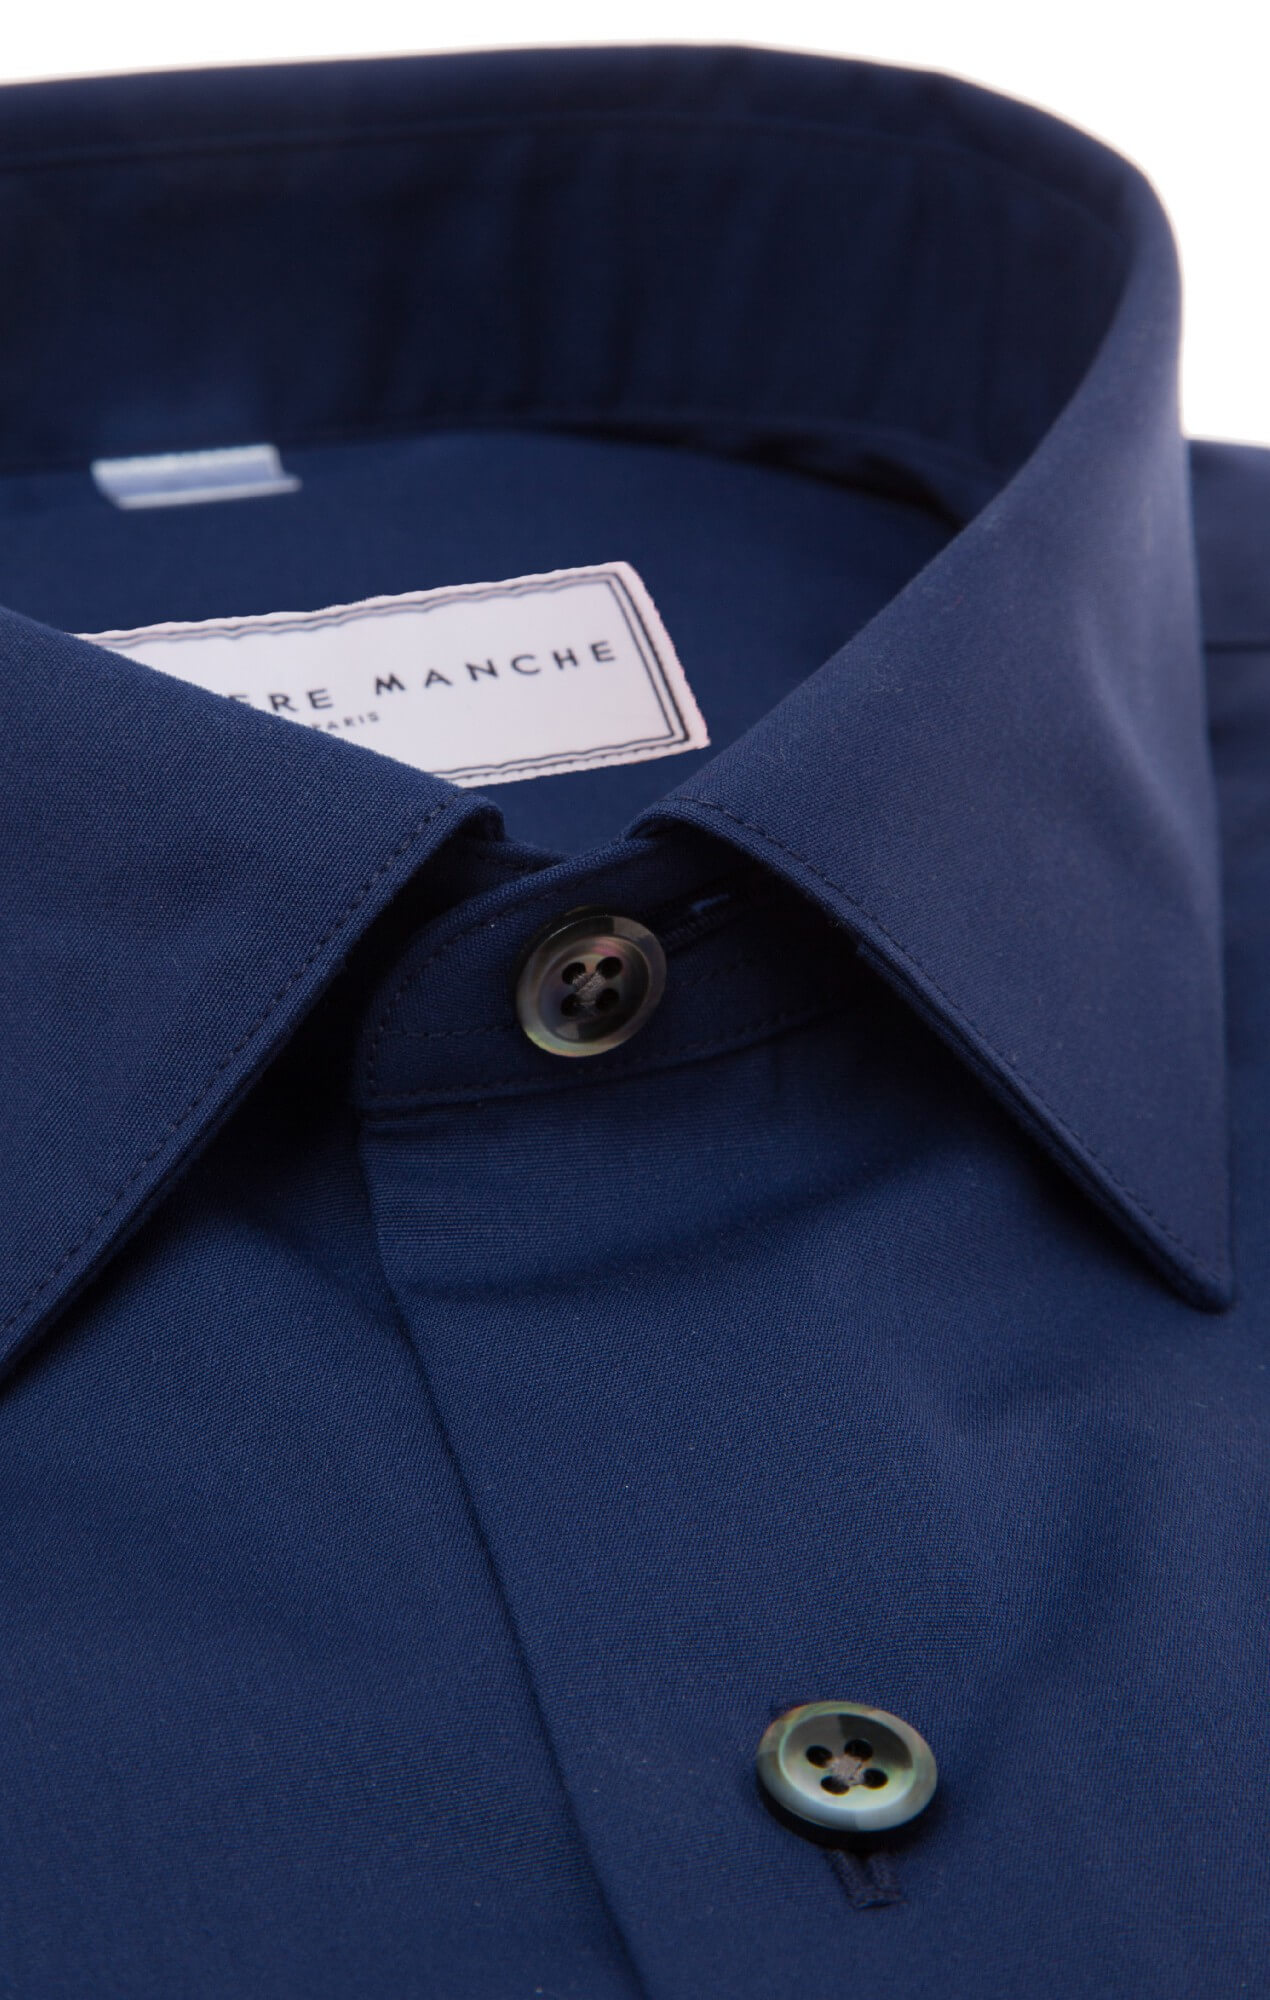 Dark blue plain shirt